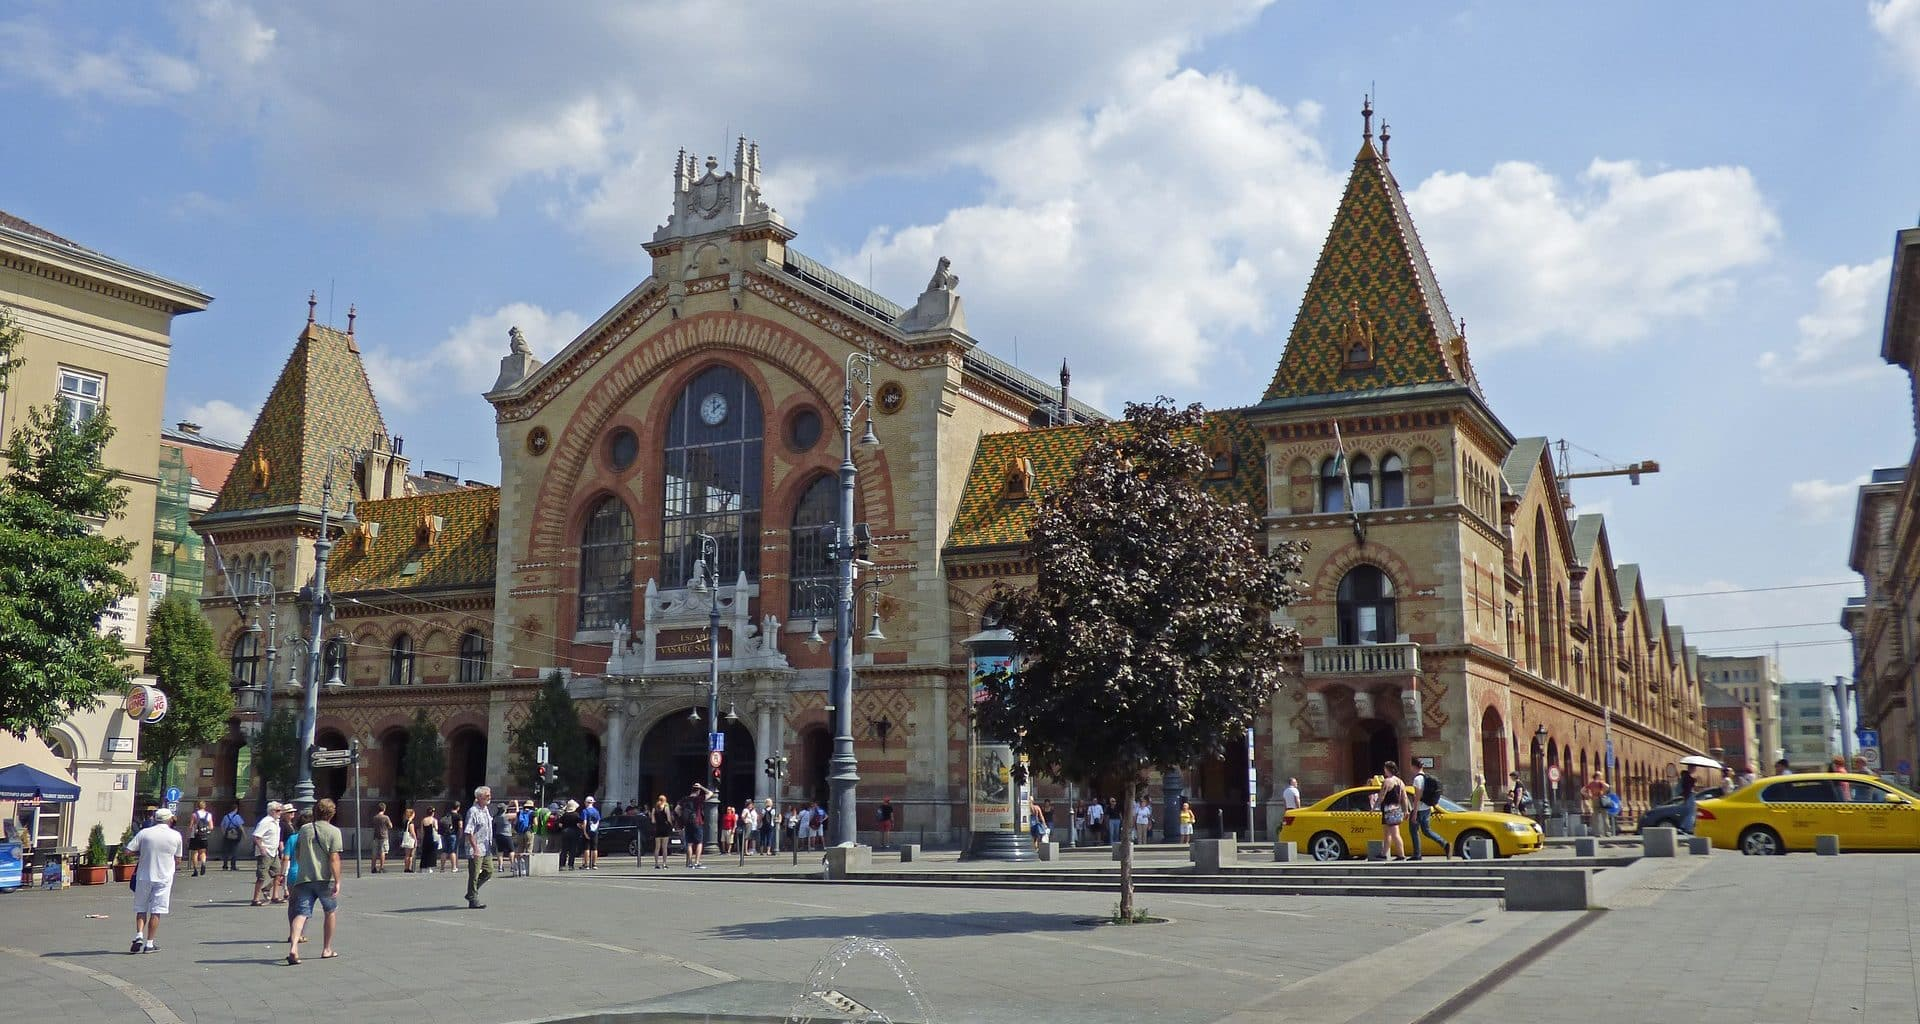 The Great Market Hall